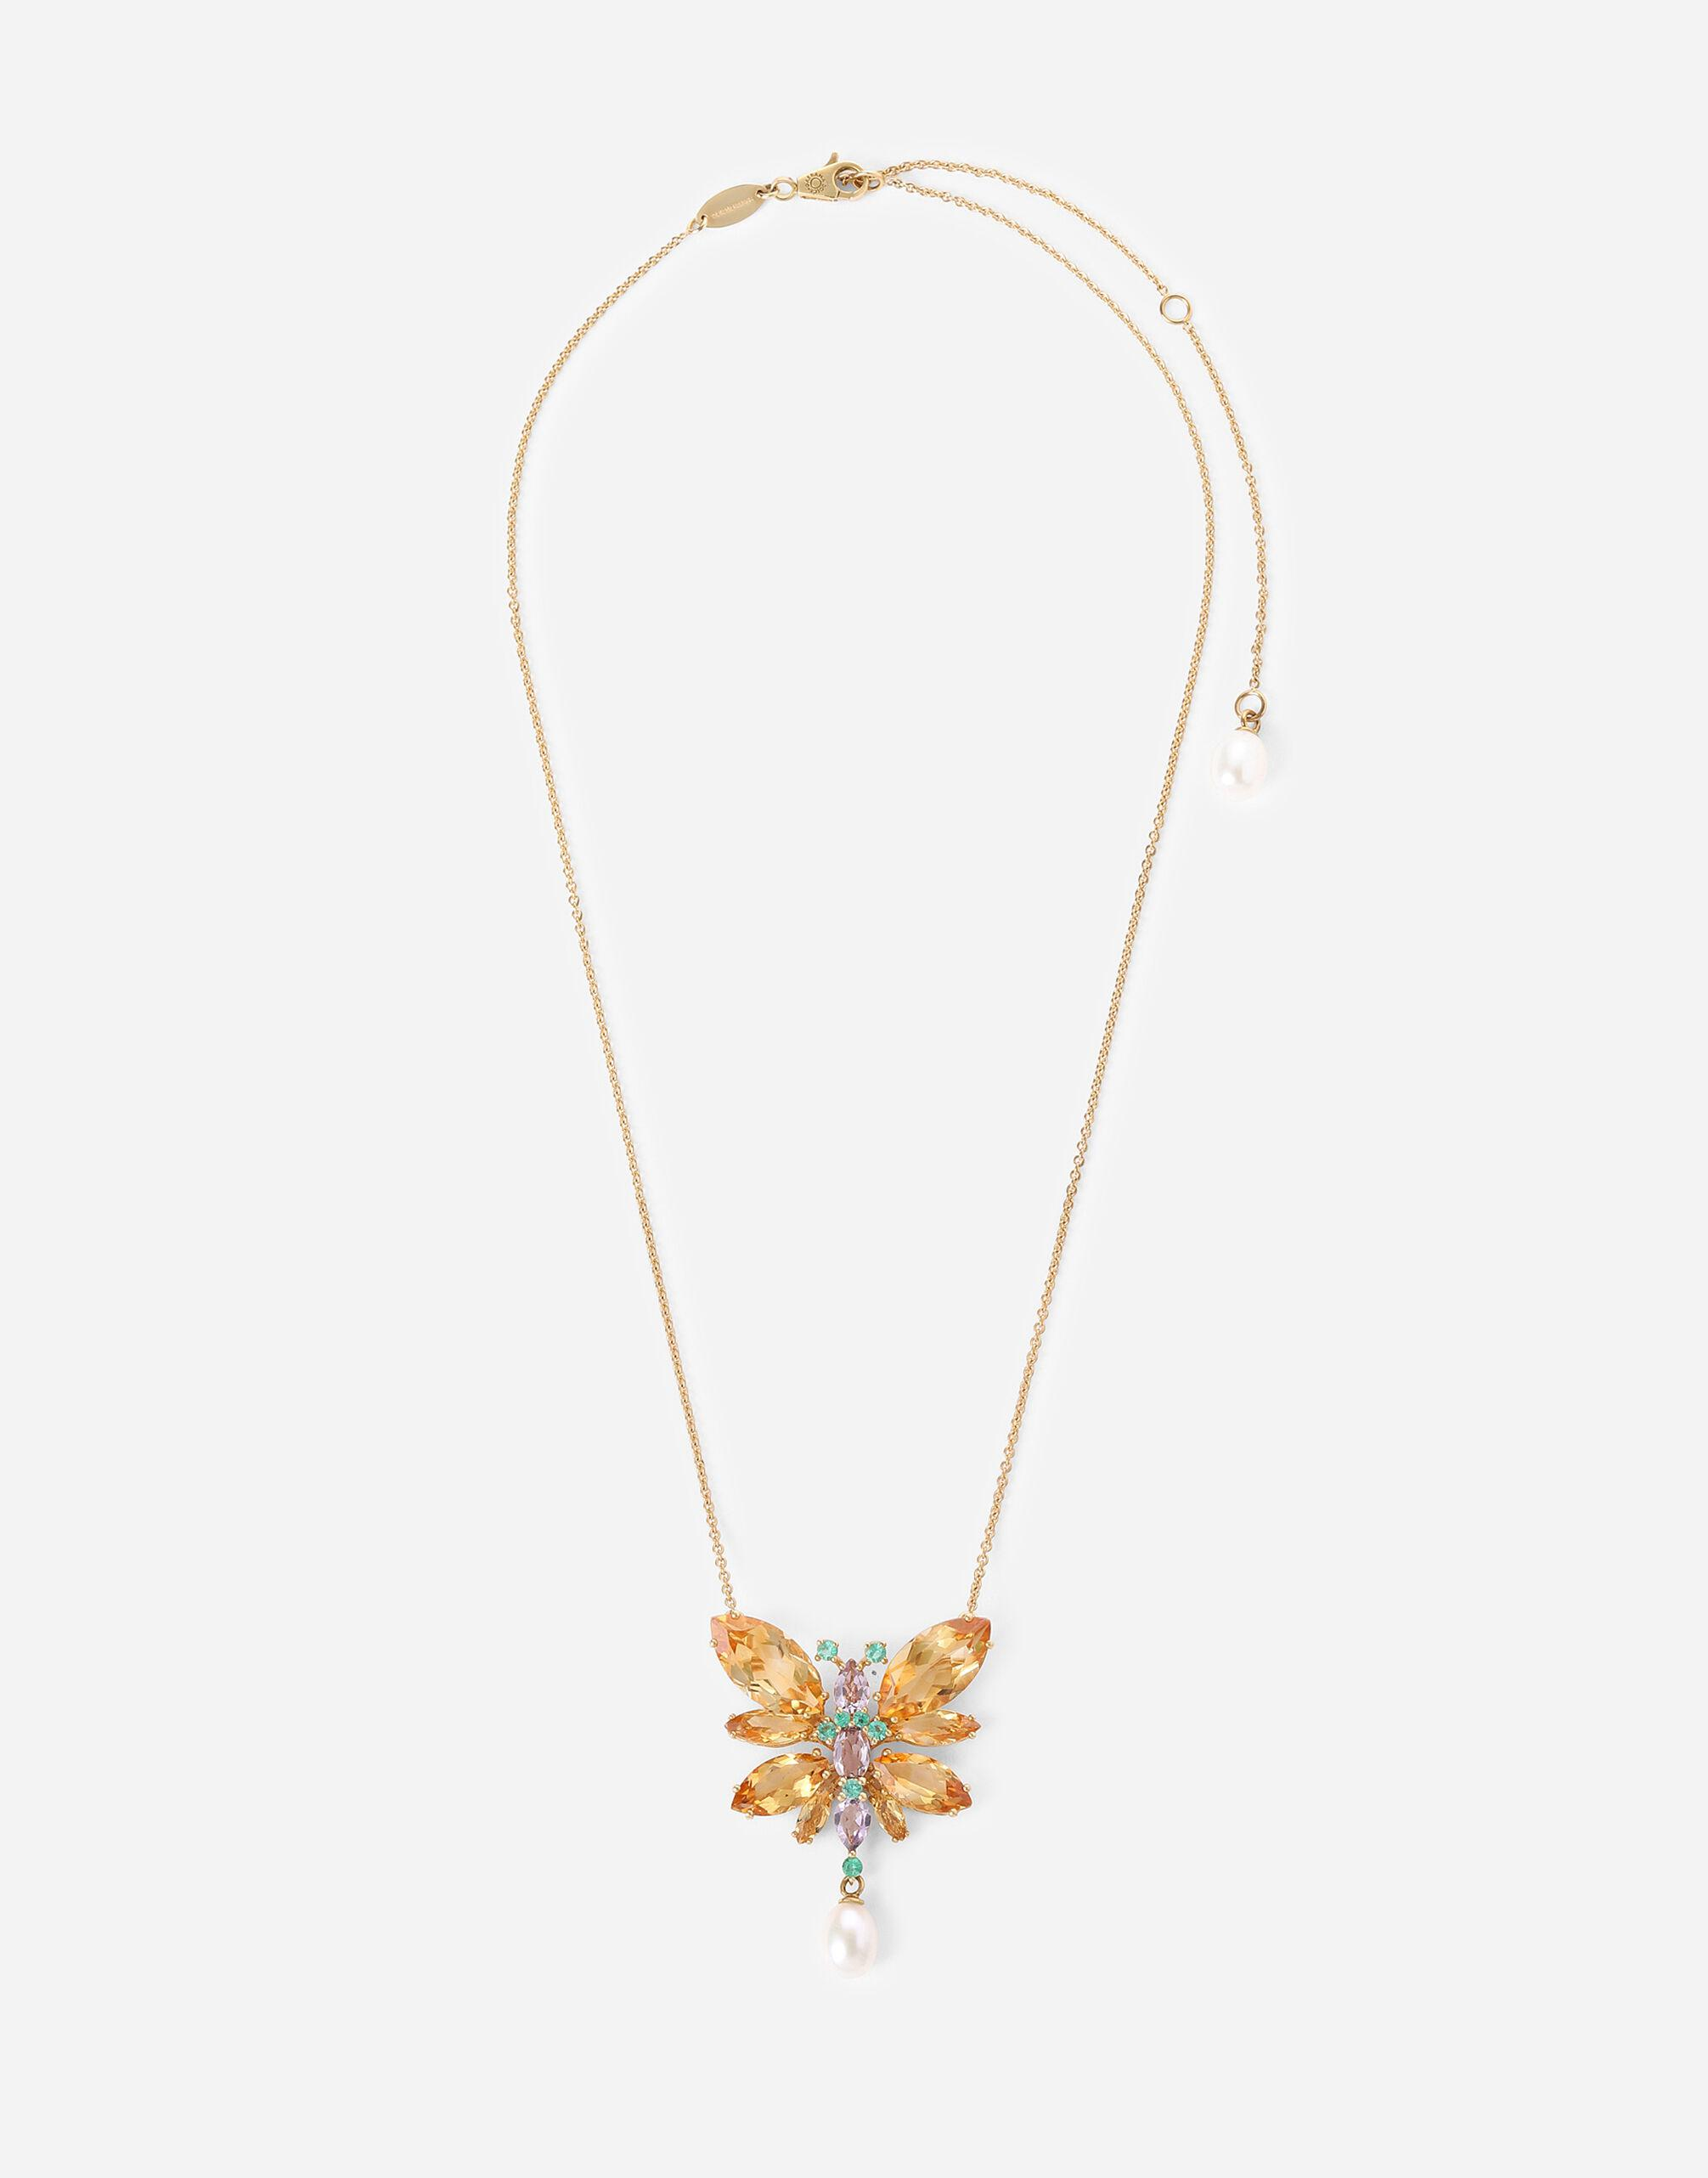 Sring necklace in yellow 18kt gold with citrine butterfly